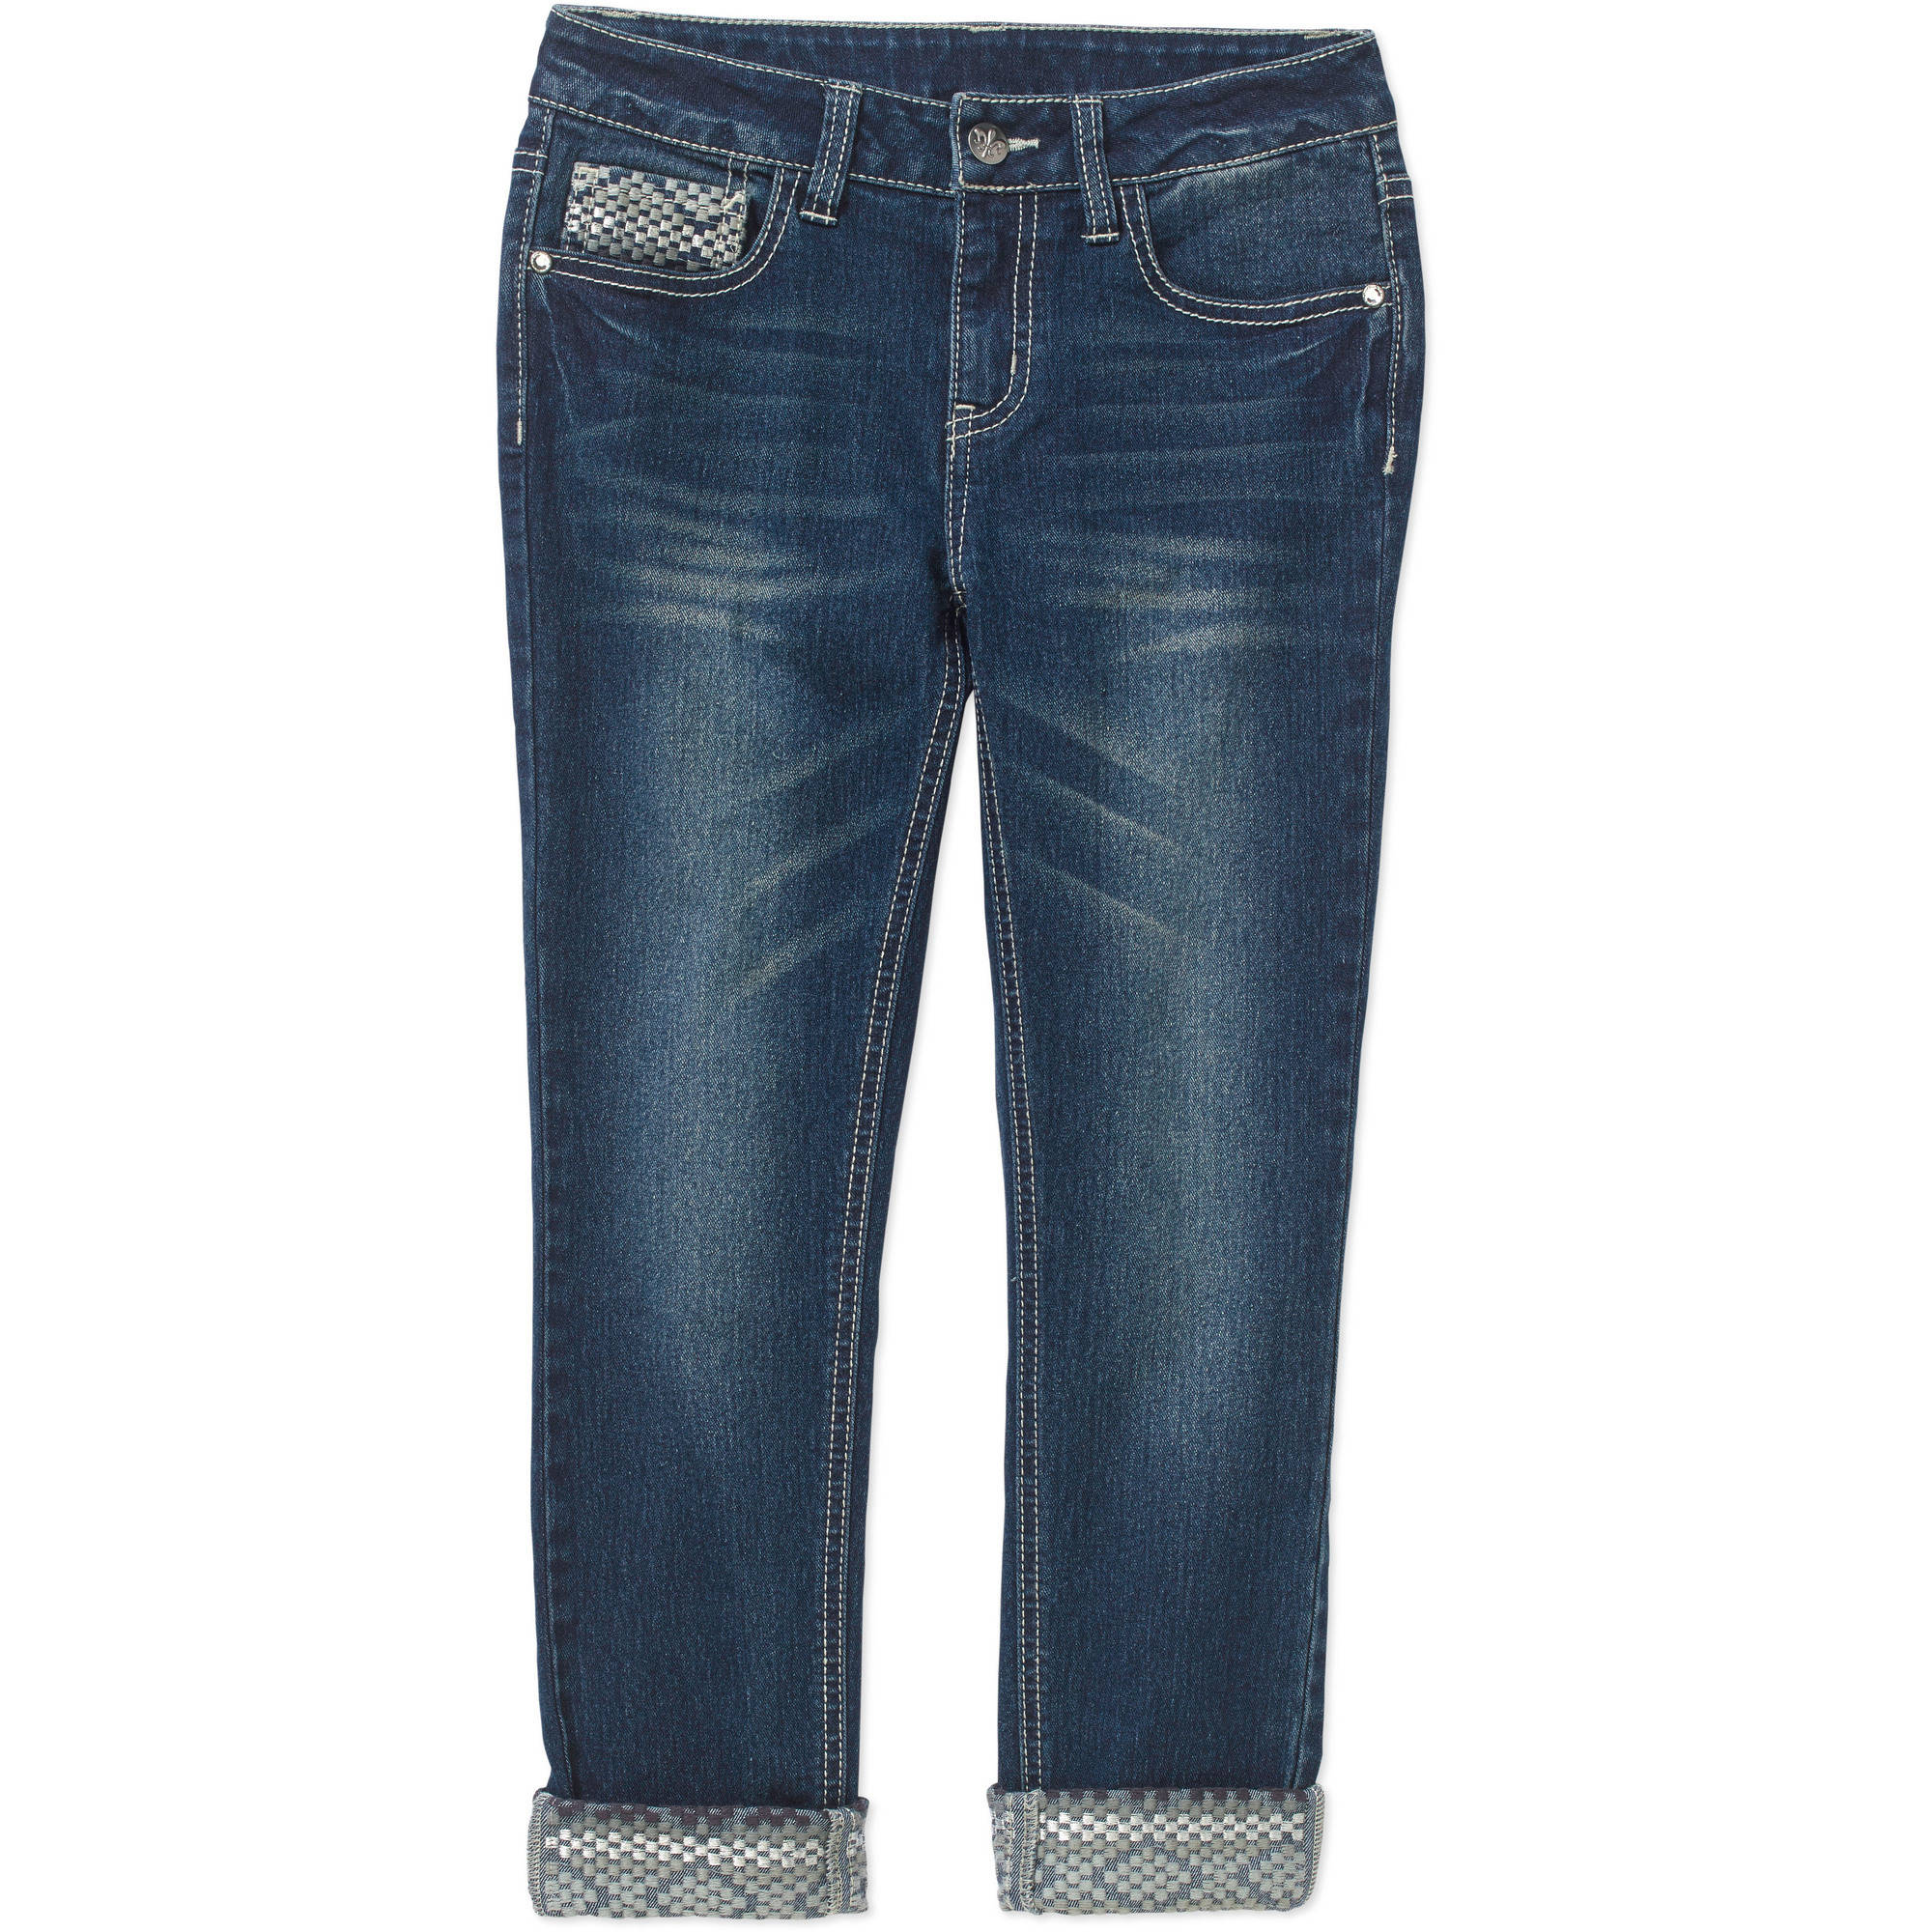 Faded Glory Girls' Fashion Boyfriend Jeans